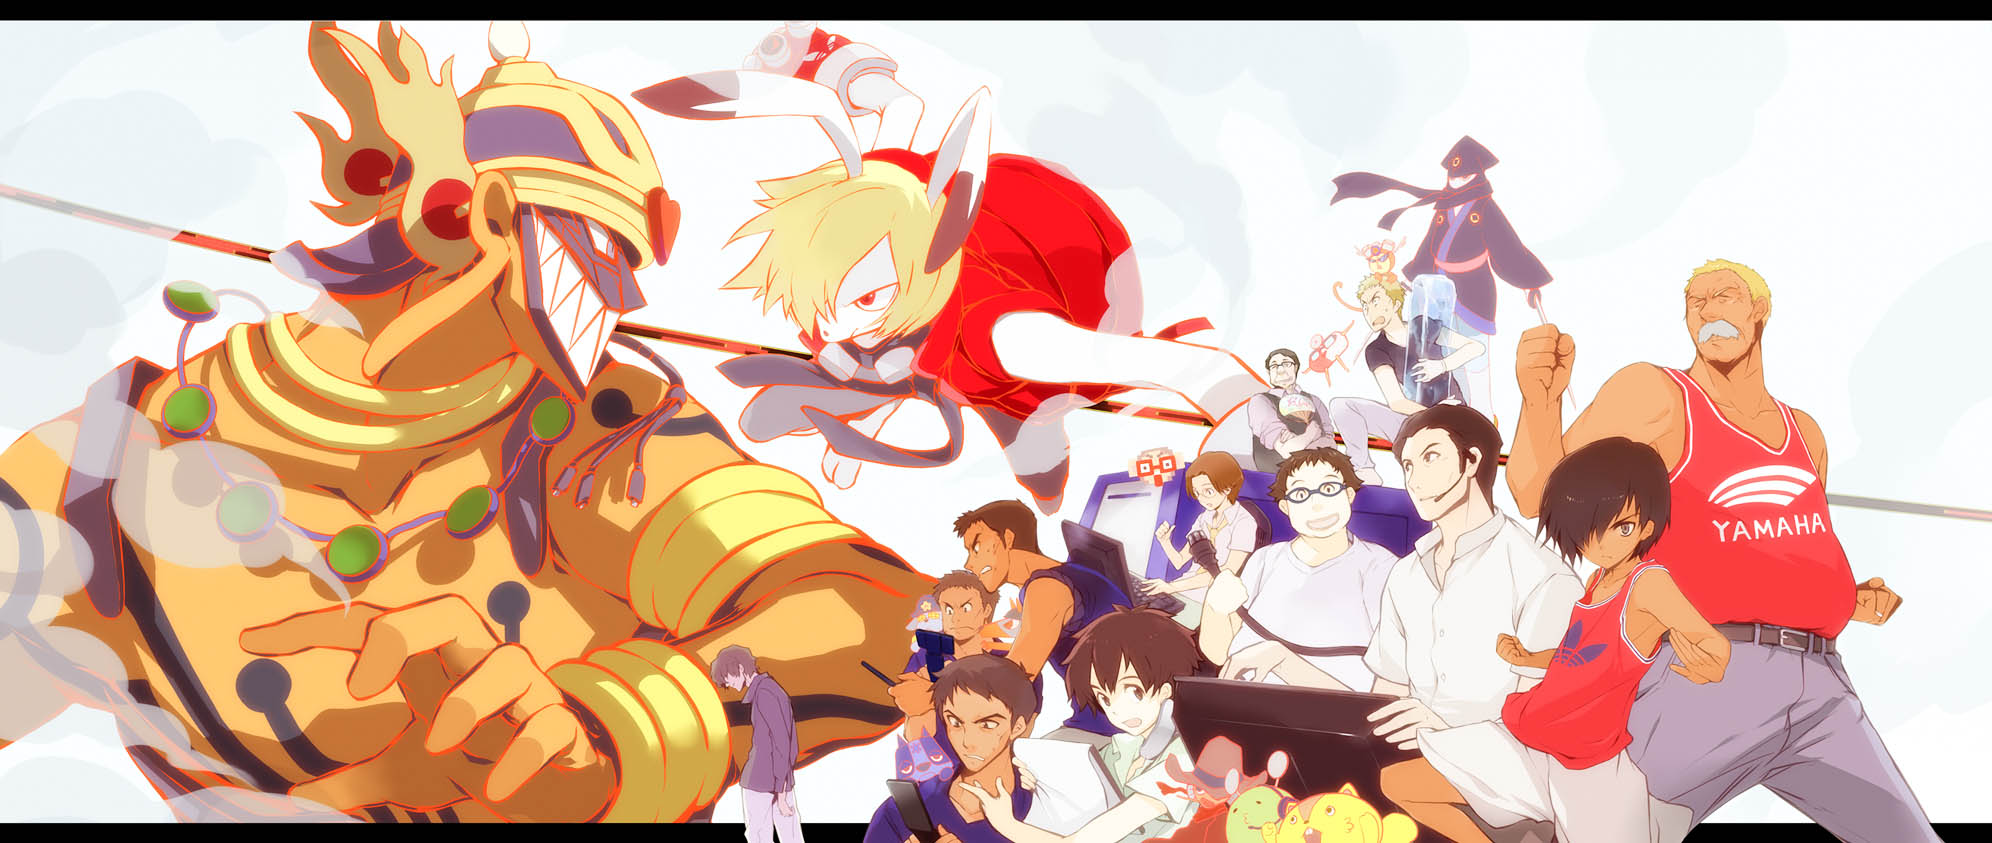 Wallpaper Digimon Hd Summer Wars New High Definition Hd Wallpapers All Hd